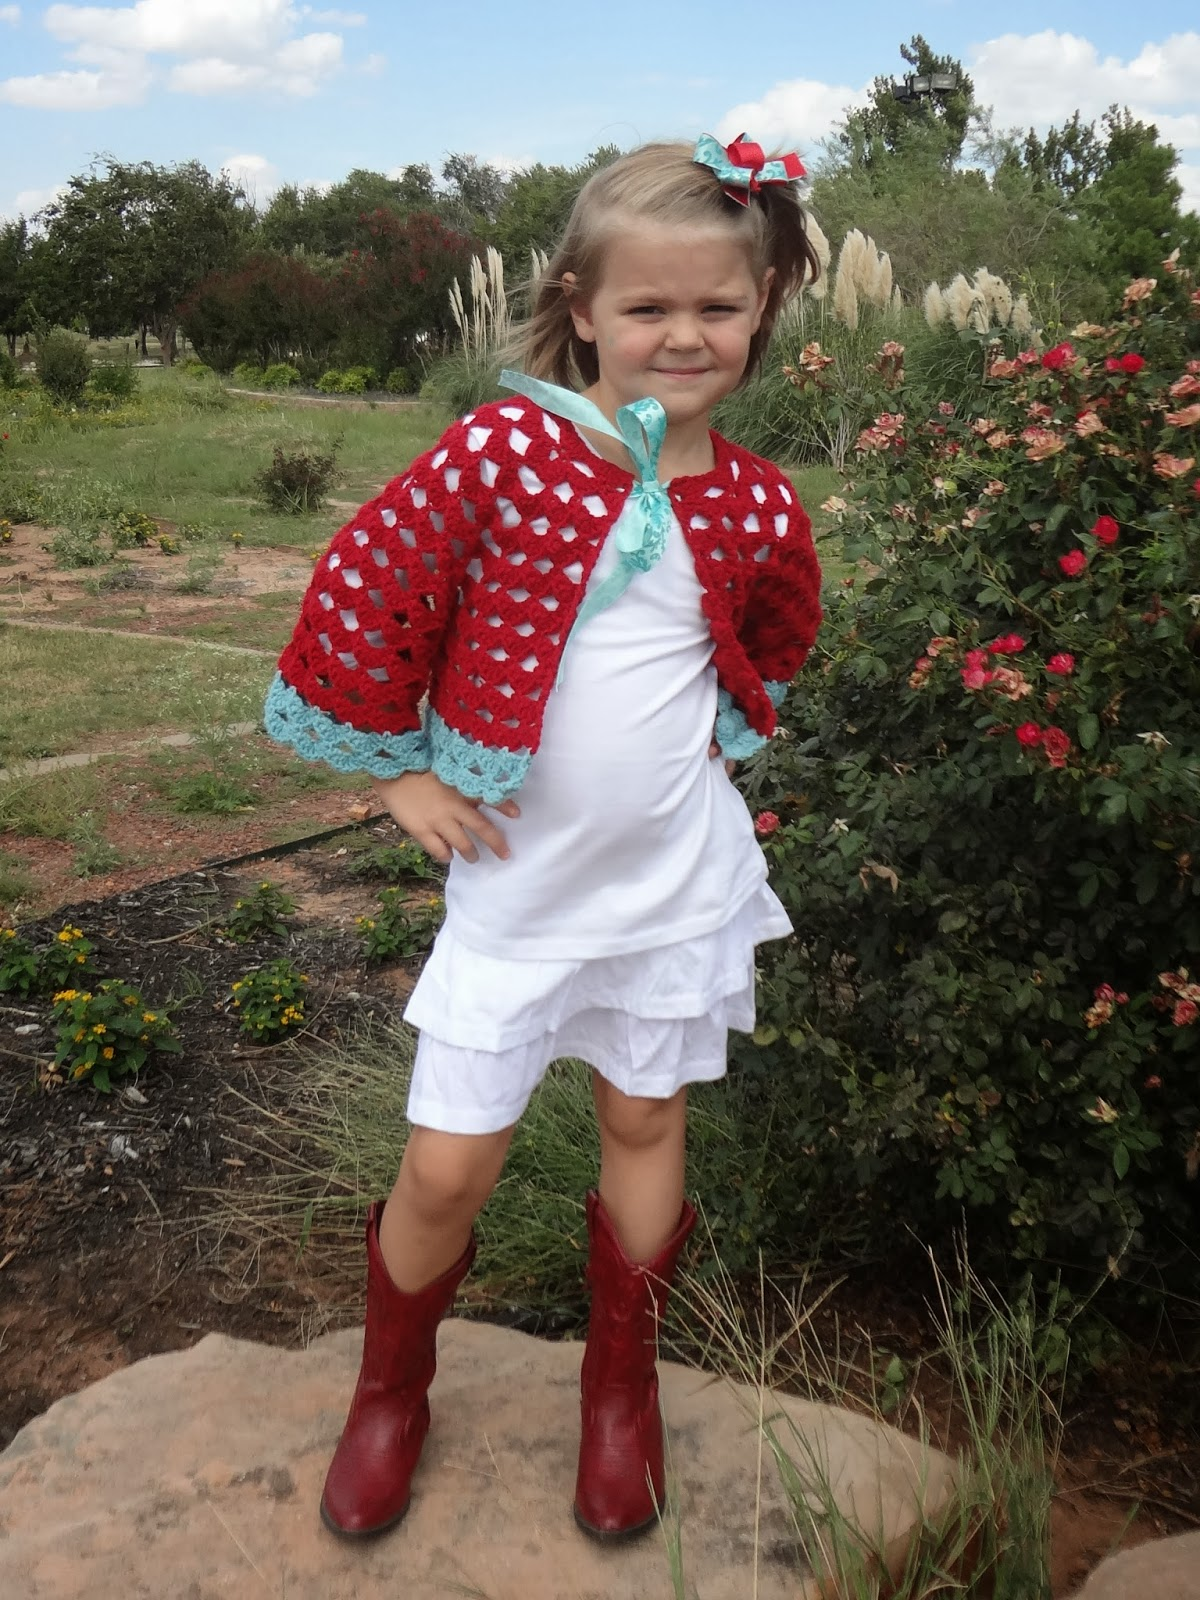 Young girl wearing an openwork crochet cardigan, white t-shirt and skirt, and red boots standing in a garden.